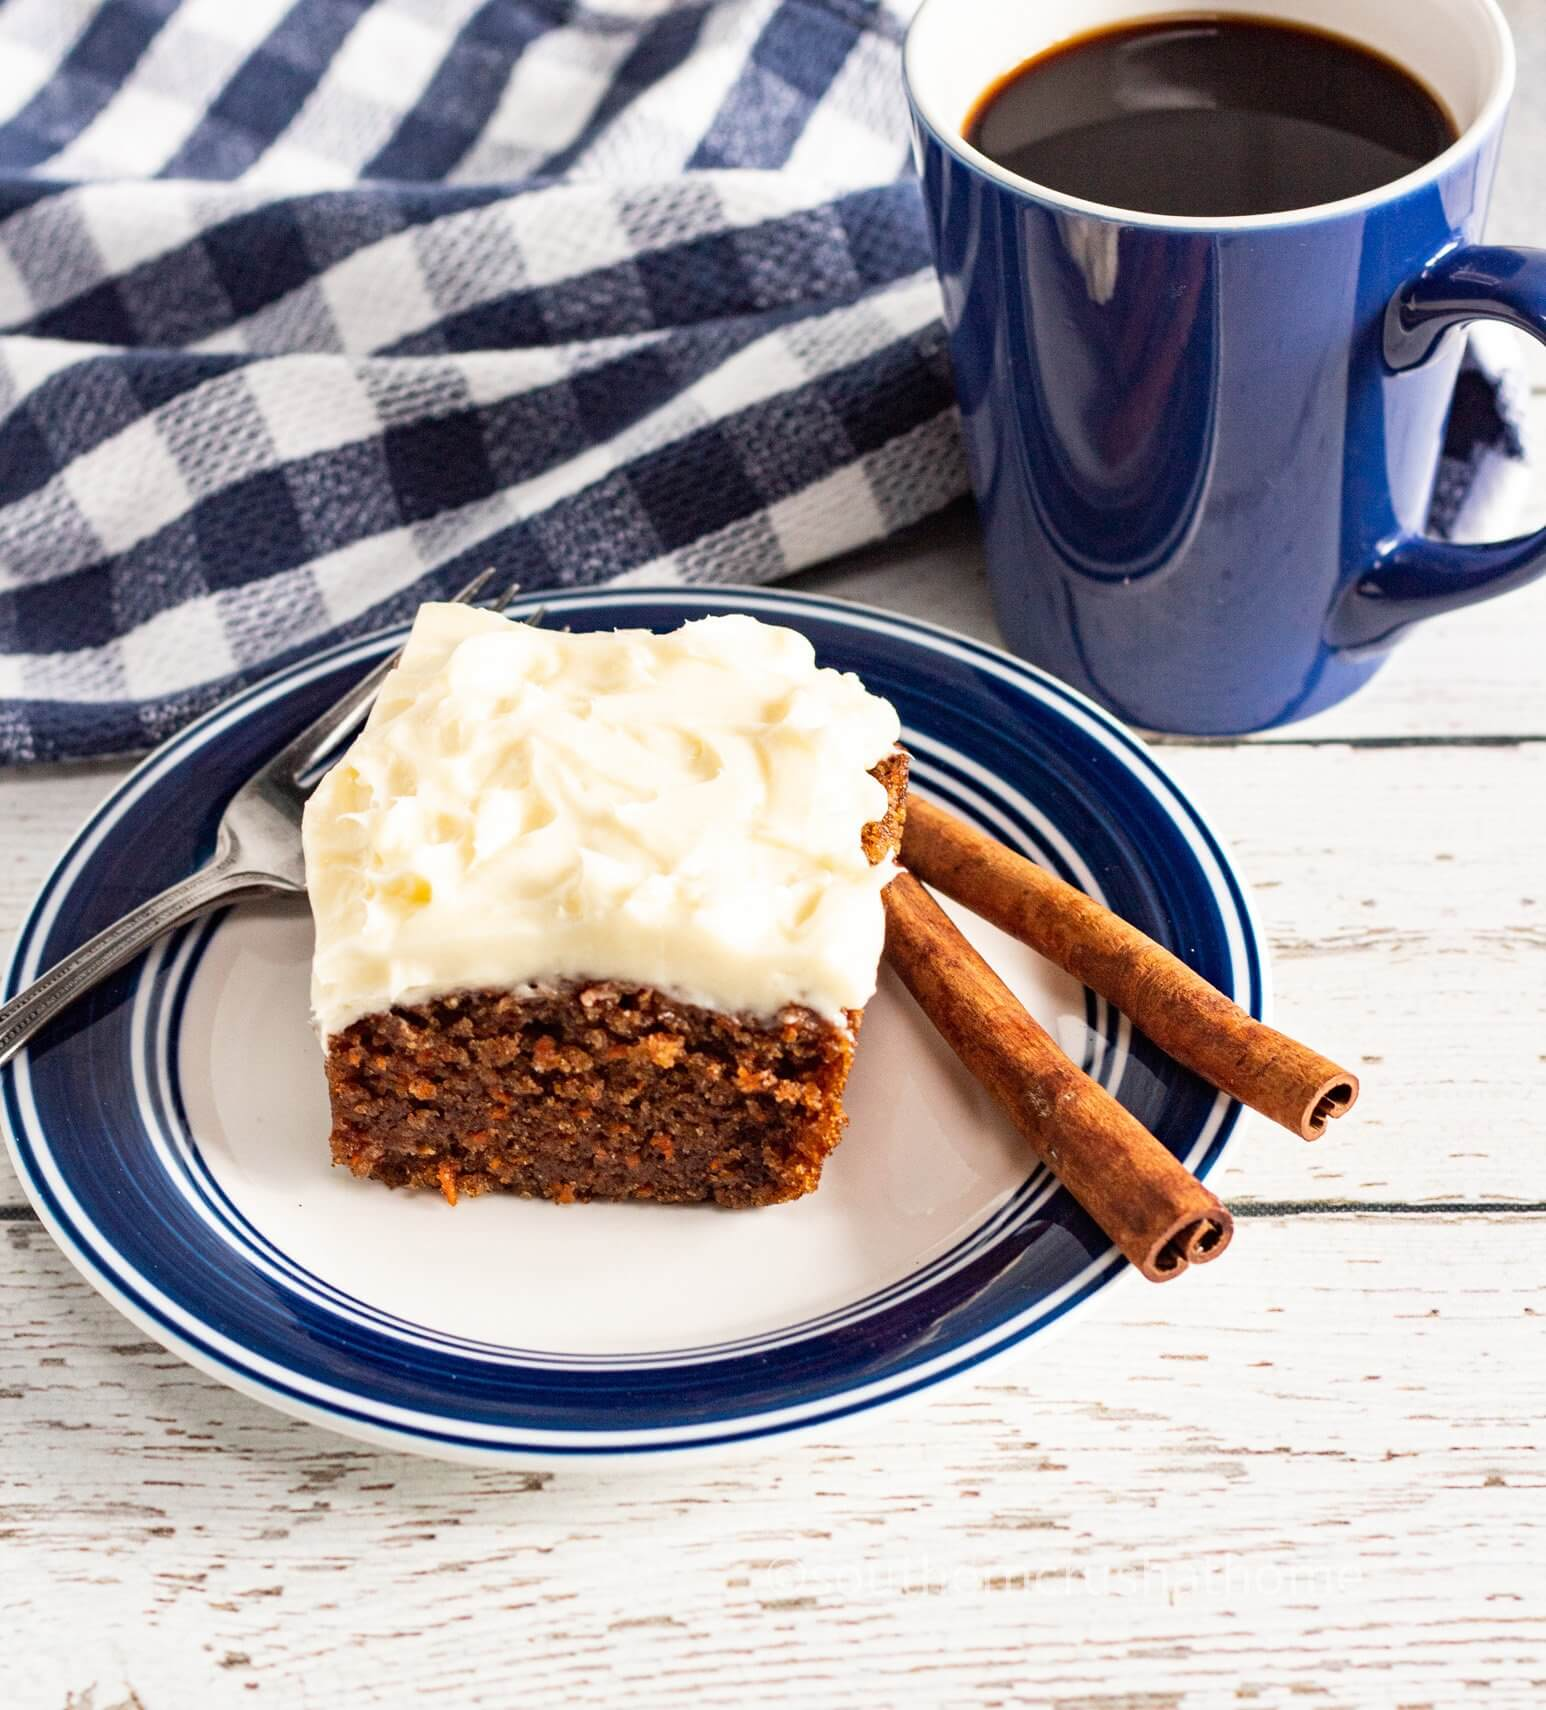 Easy Pumpkin Spice Cake for Thanksgiving with coffee close up